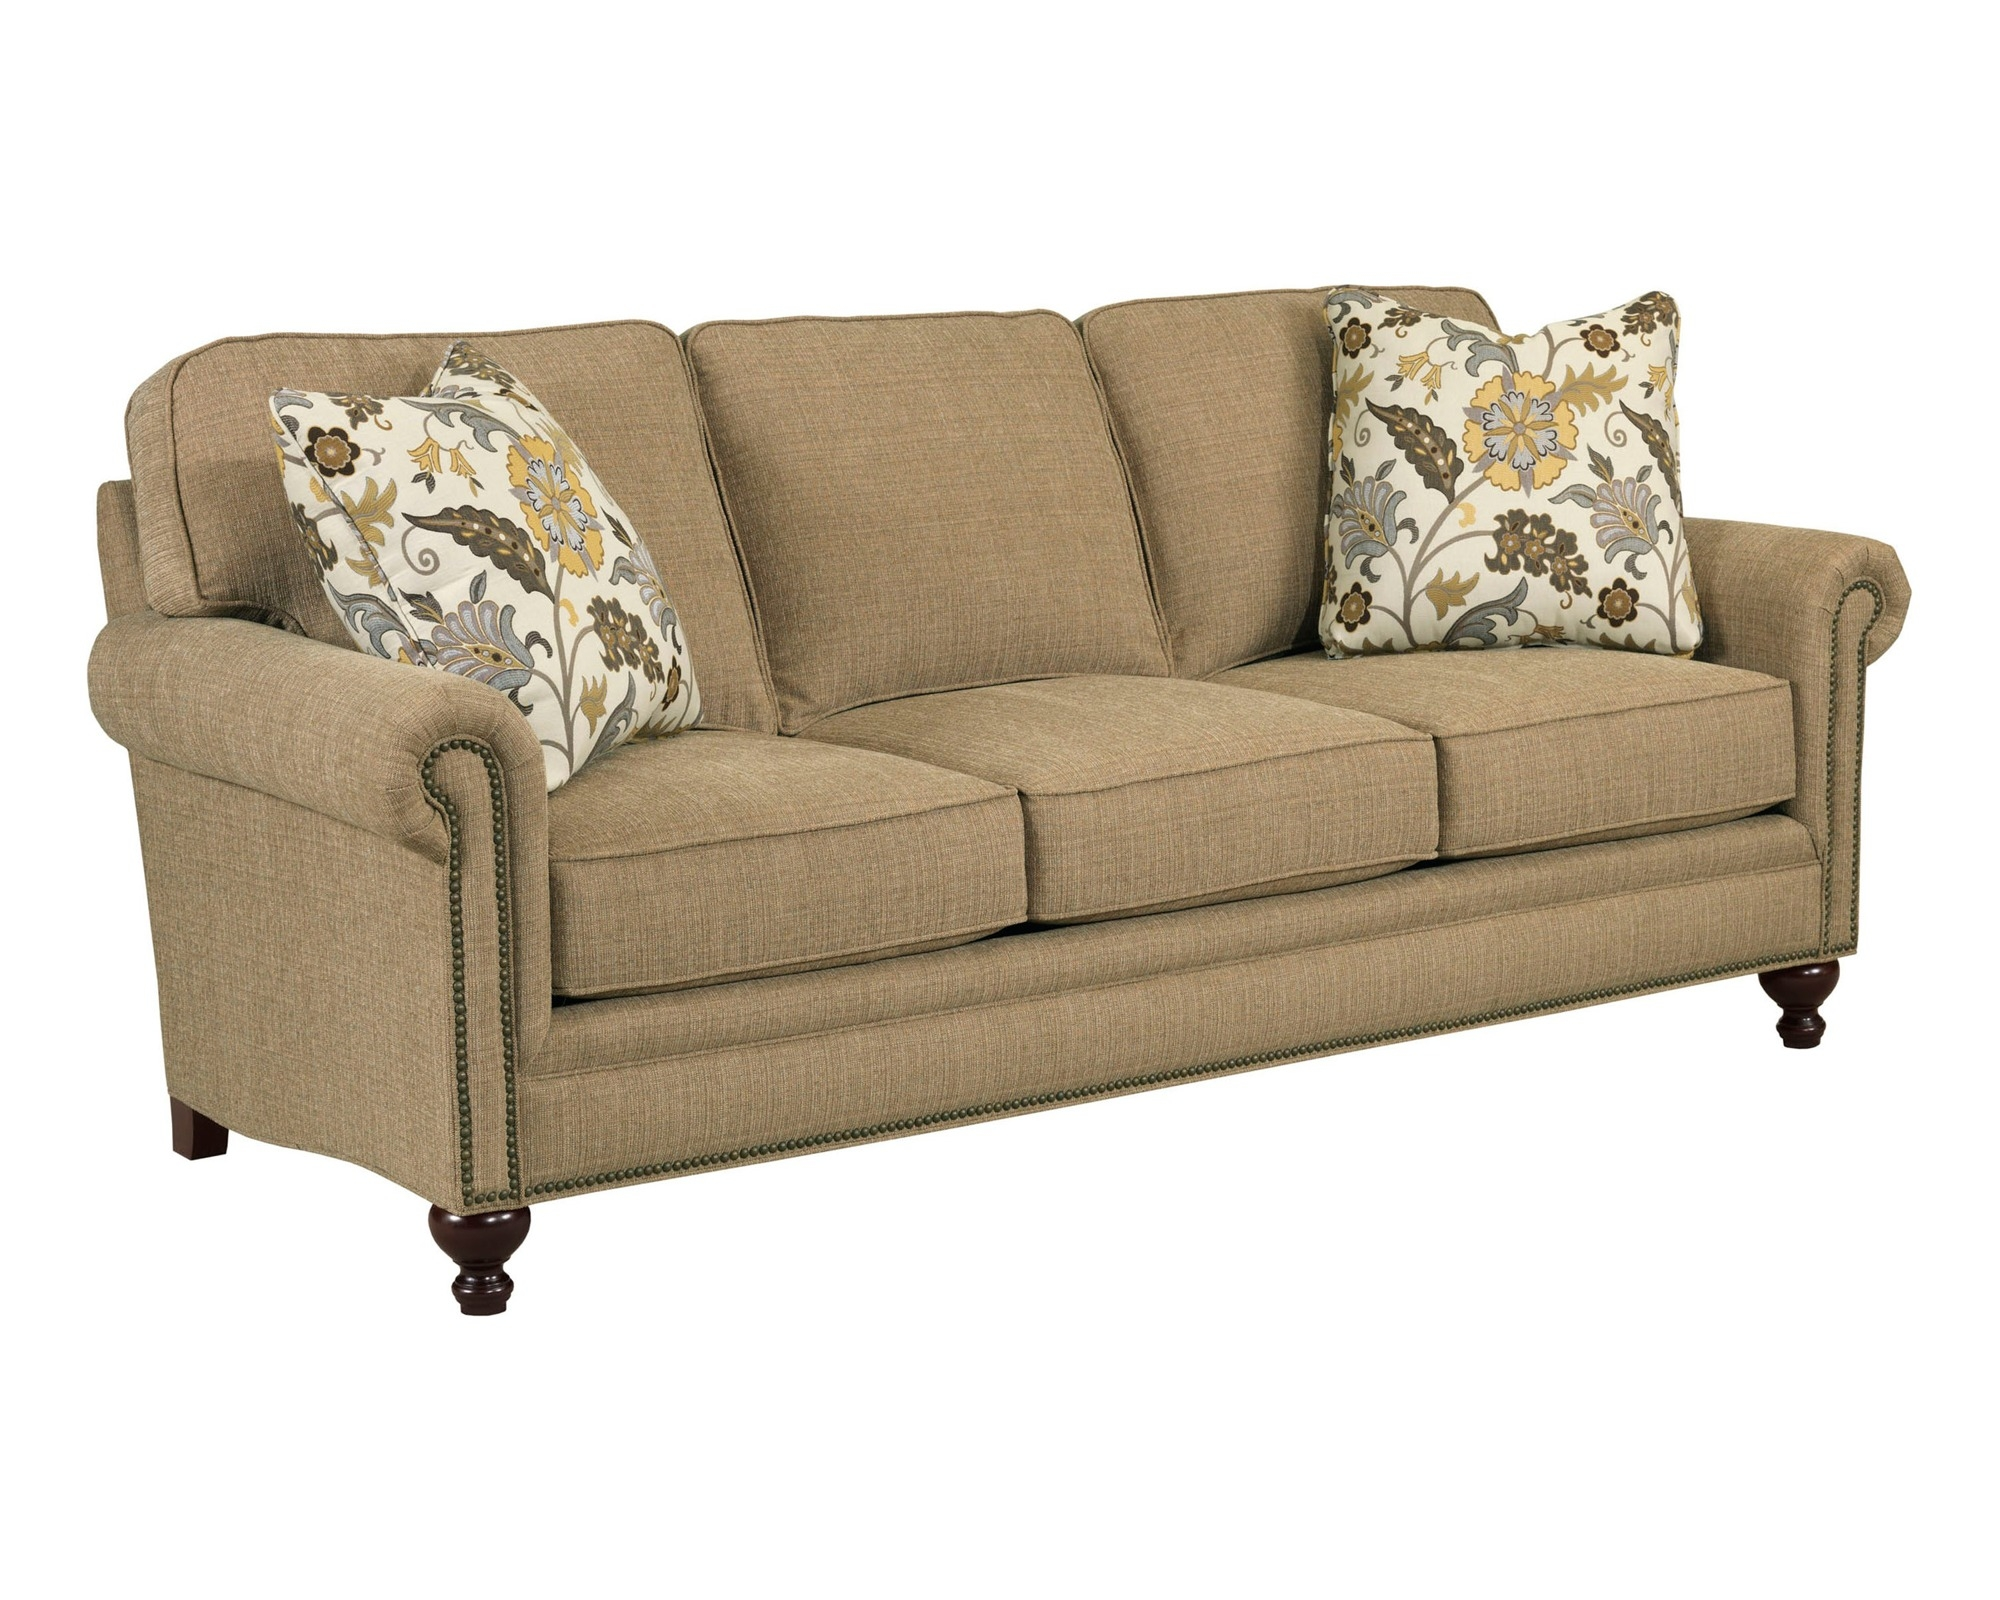 Harrison Sofabroyhill – Home Gallery Stores In Broyhill Sofas (Image 19 of 20)